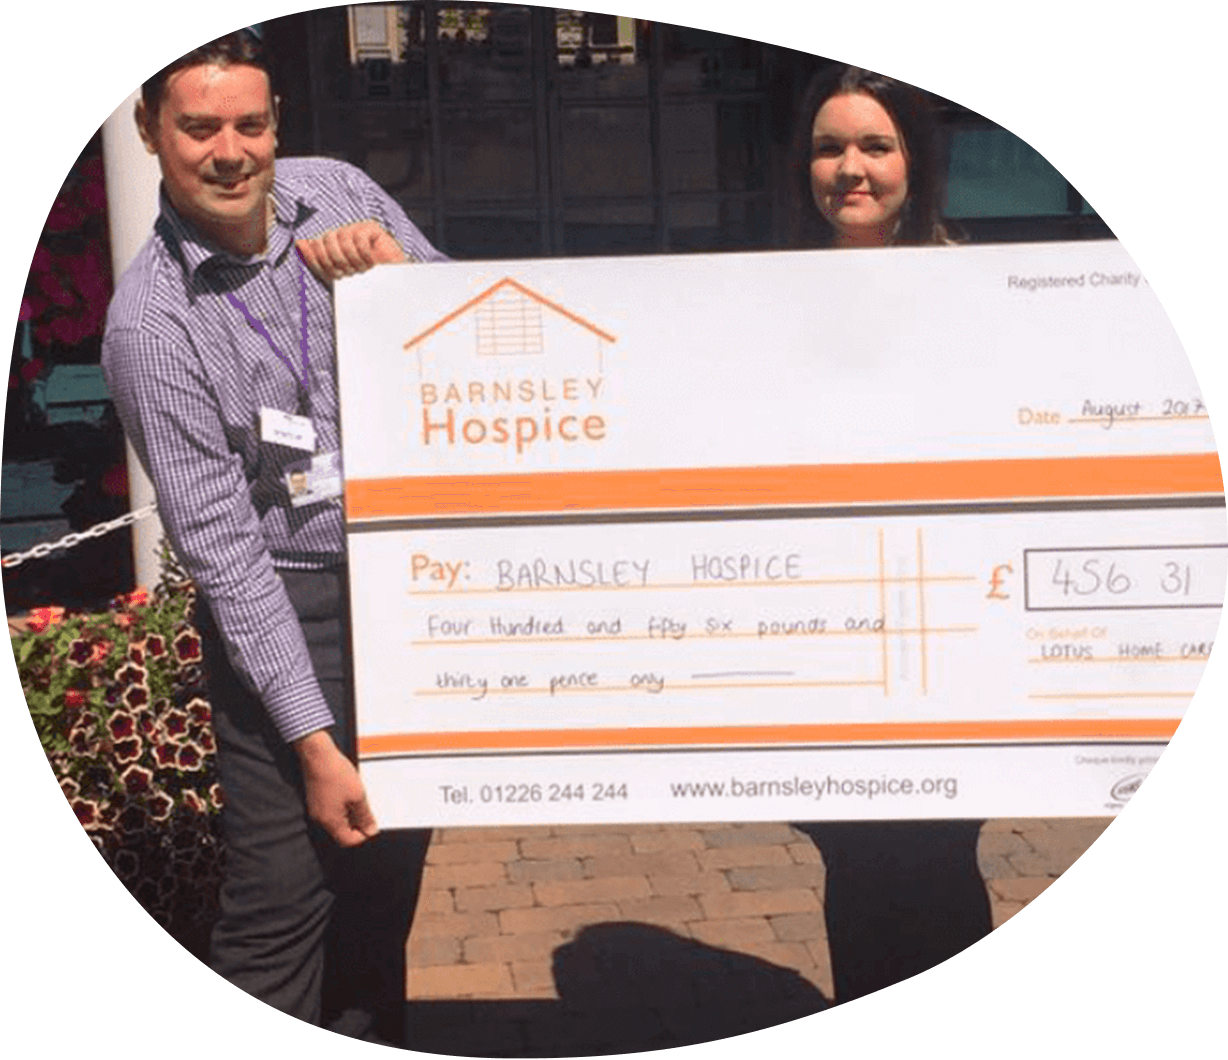 Lotus Home Care Raises Money For Barnsley Hospice